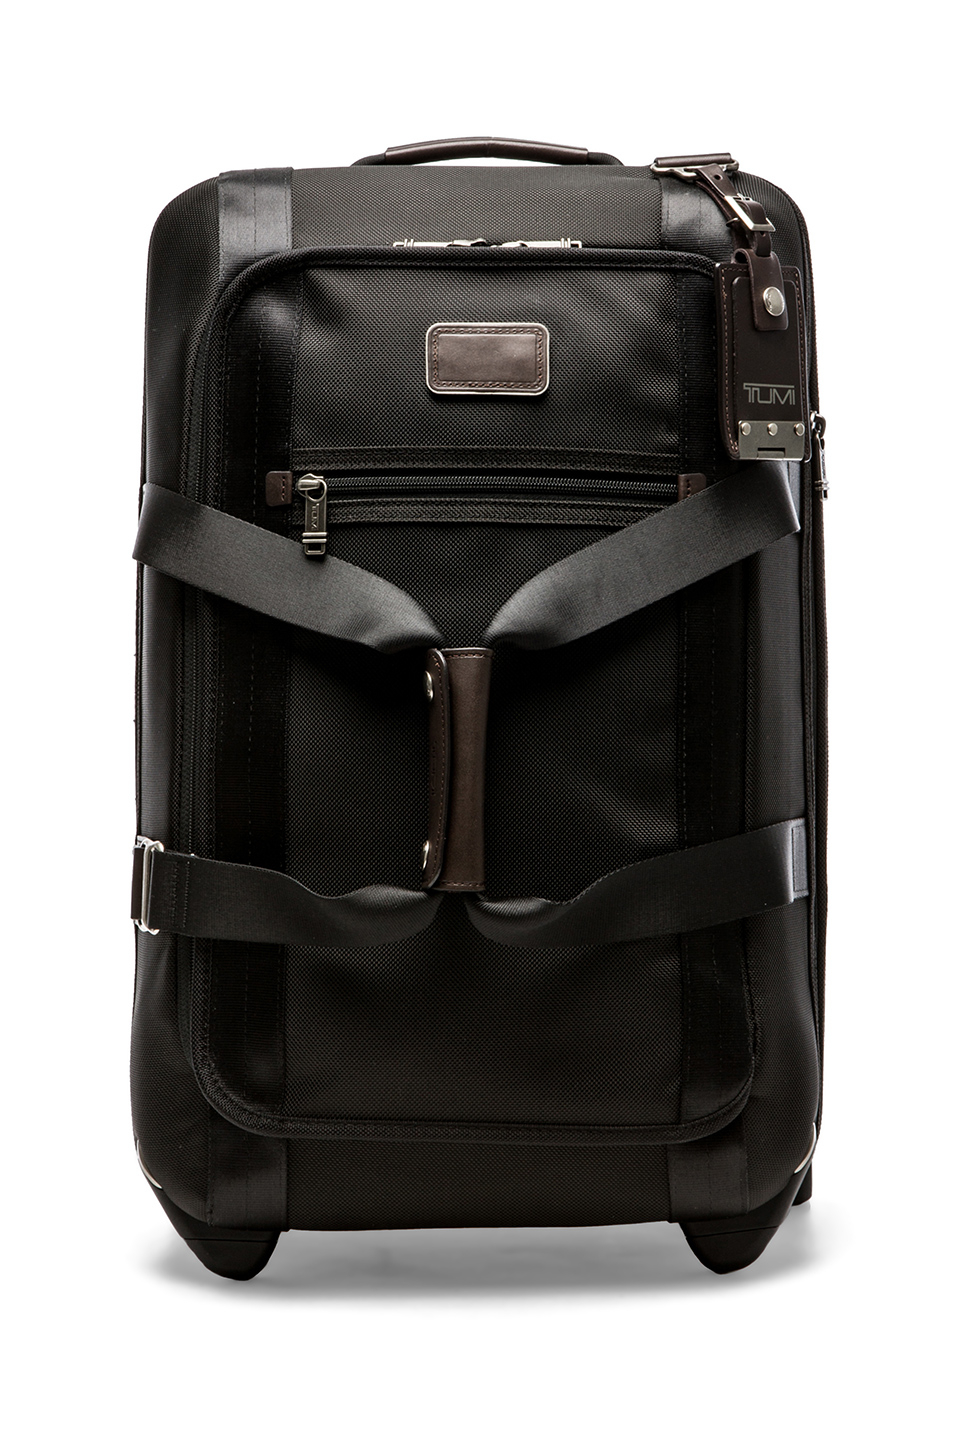 Tumi Alpha Bravo | Tumi Alpha Bravo Knox Backpack Black | Tumi Sling Bag